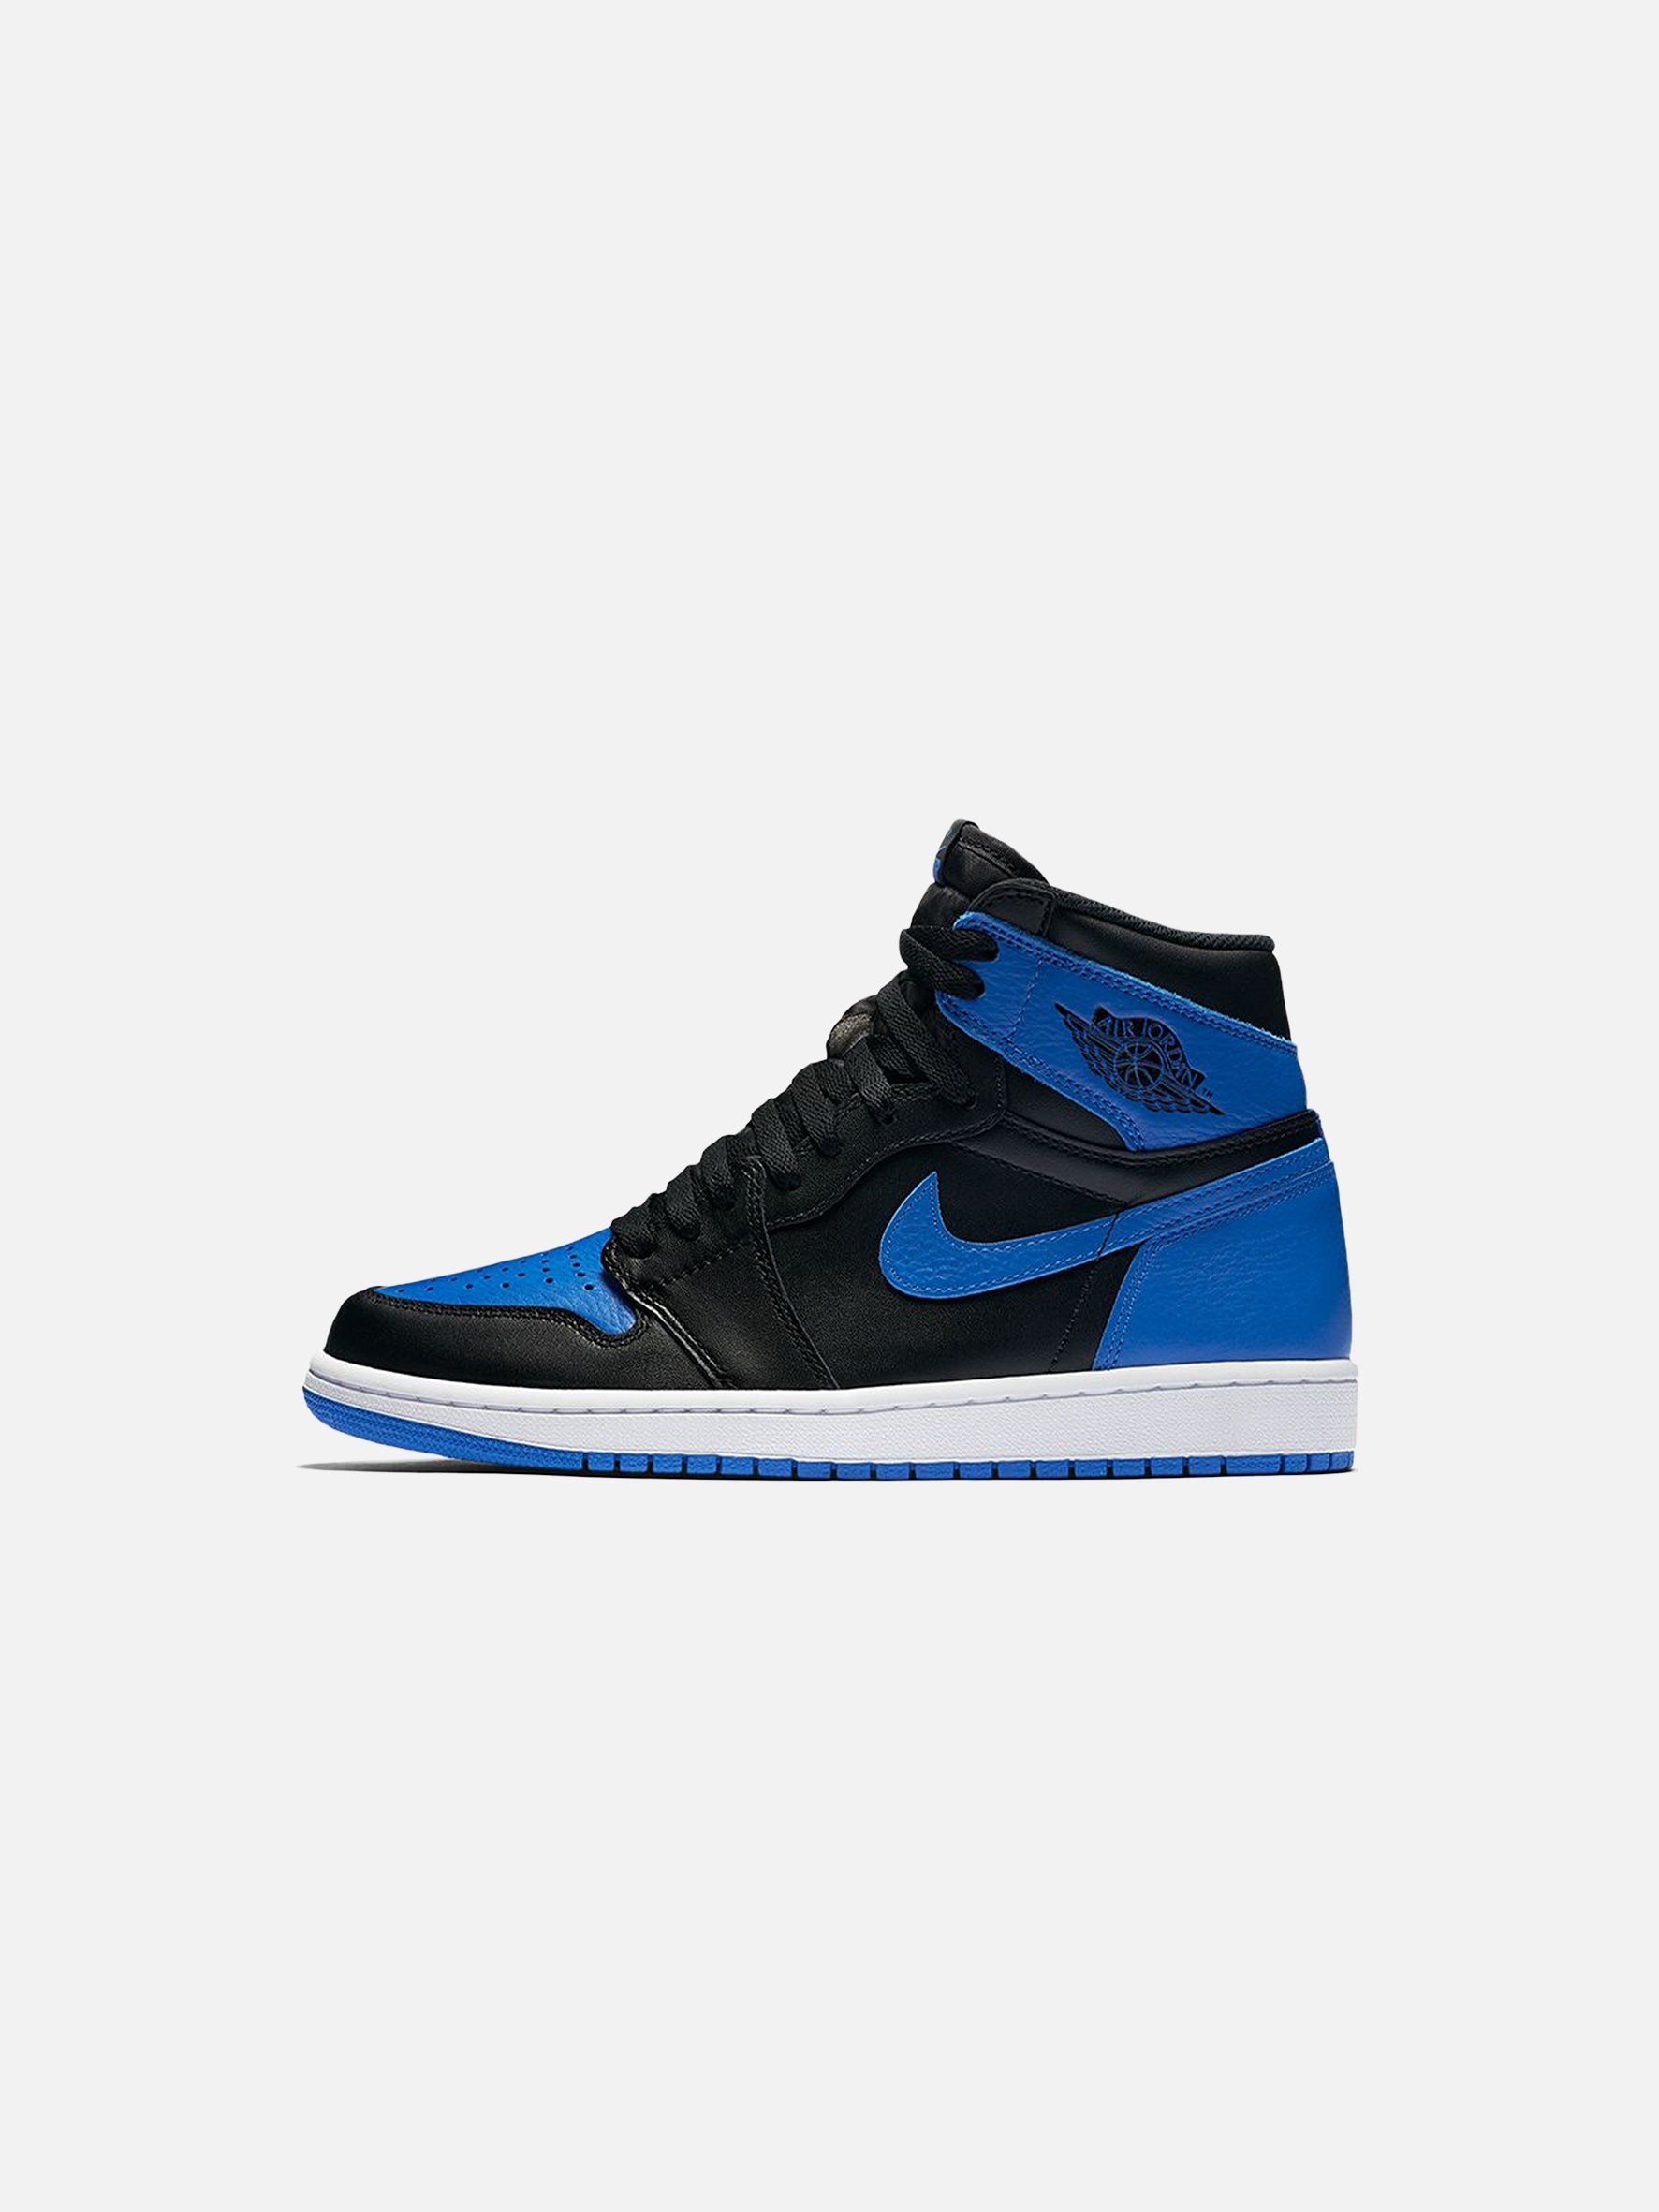 Nike Air Jordan 1 Retro Royal